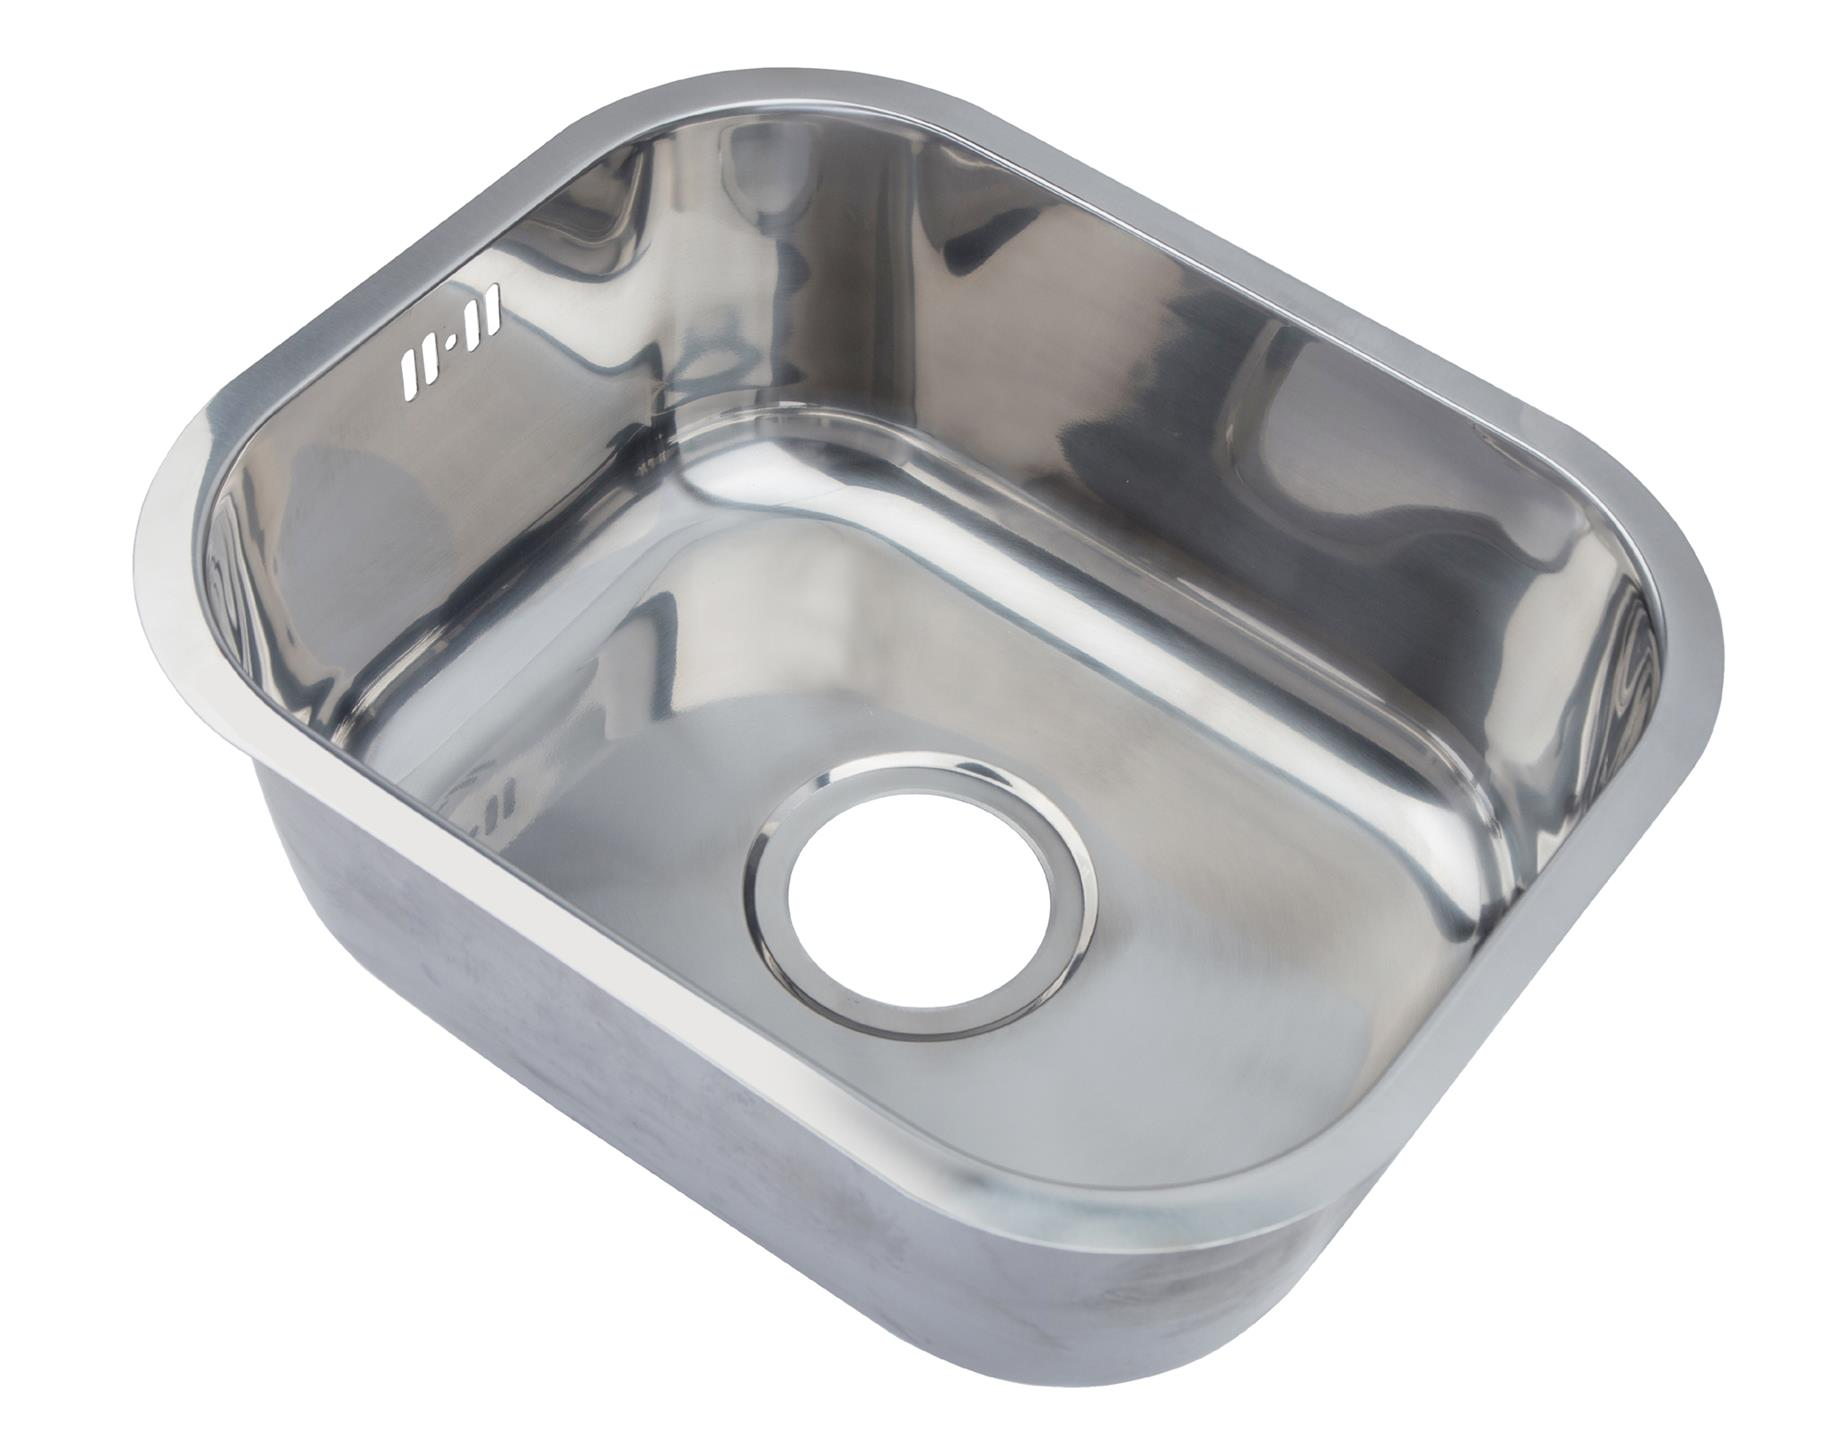 ... & DIY > Kitchen Plumbing & Fittings > Kitchen Sinks without...